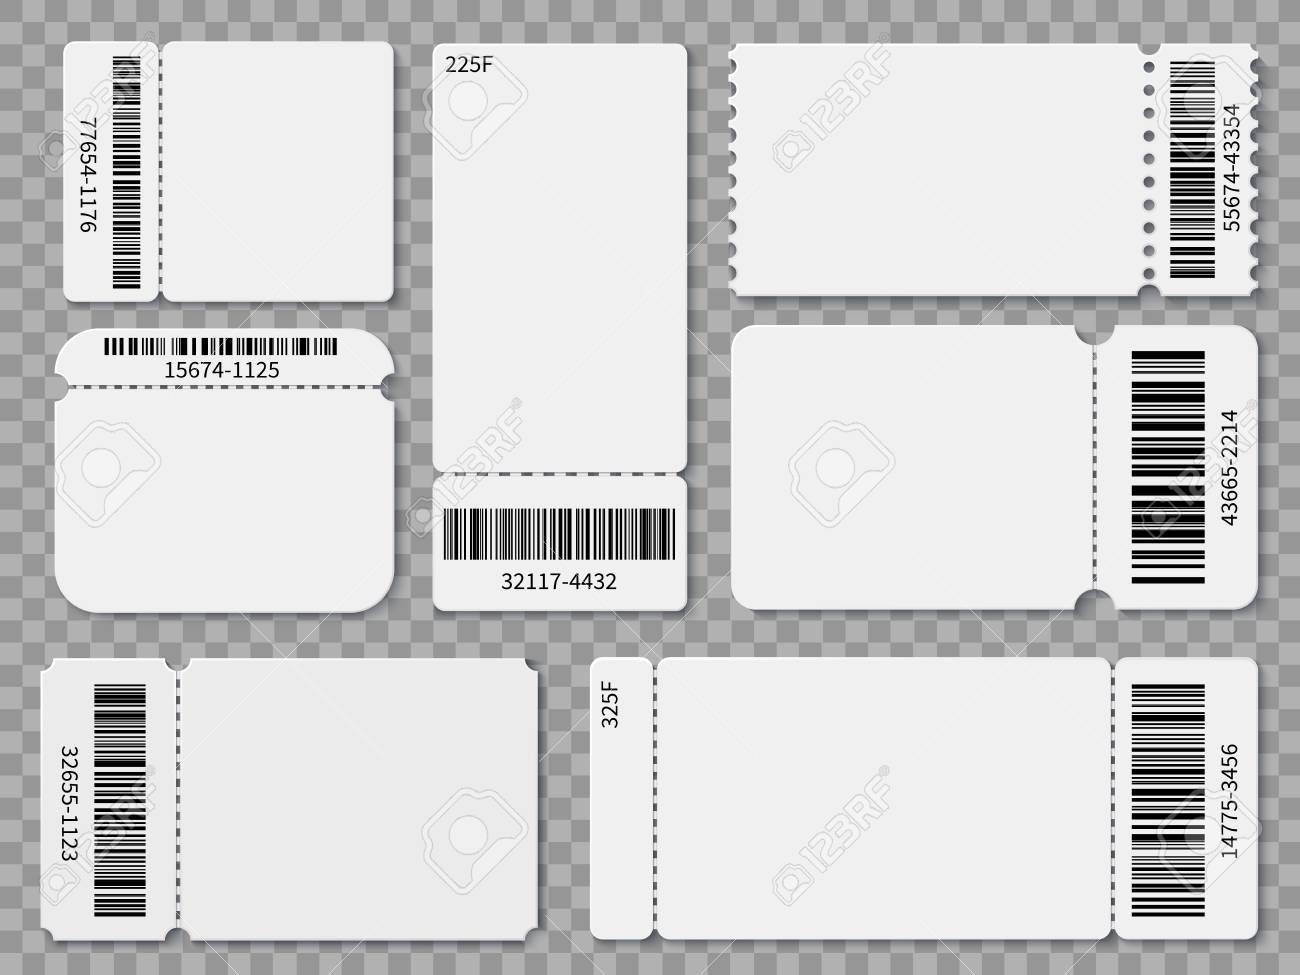 003 Staggering Free Printable Ticket Template Concept  Raffle Printing Airline For Gift ConcertFull